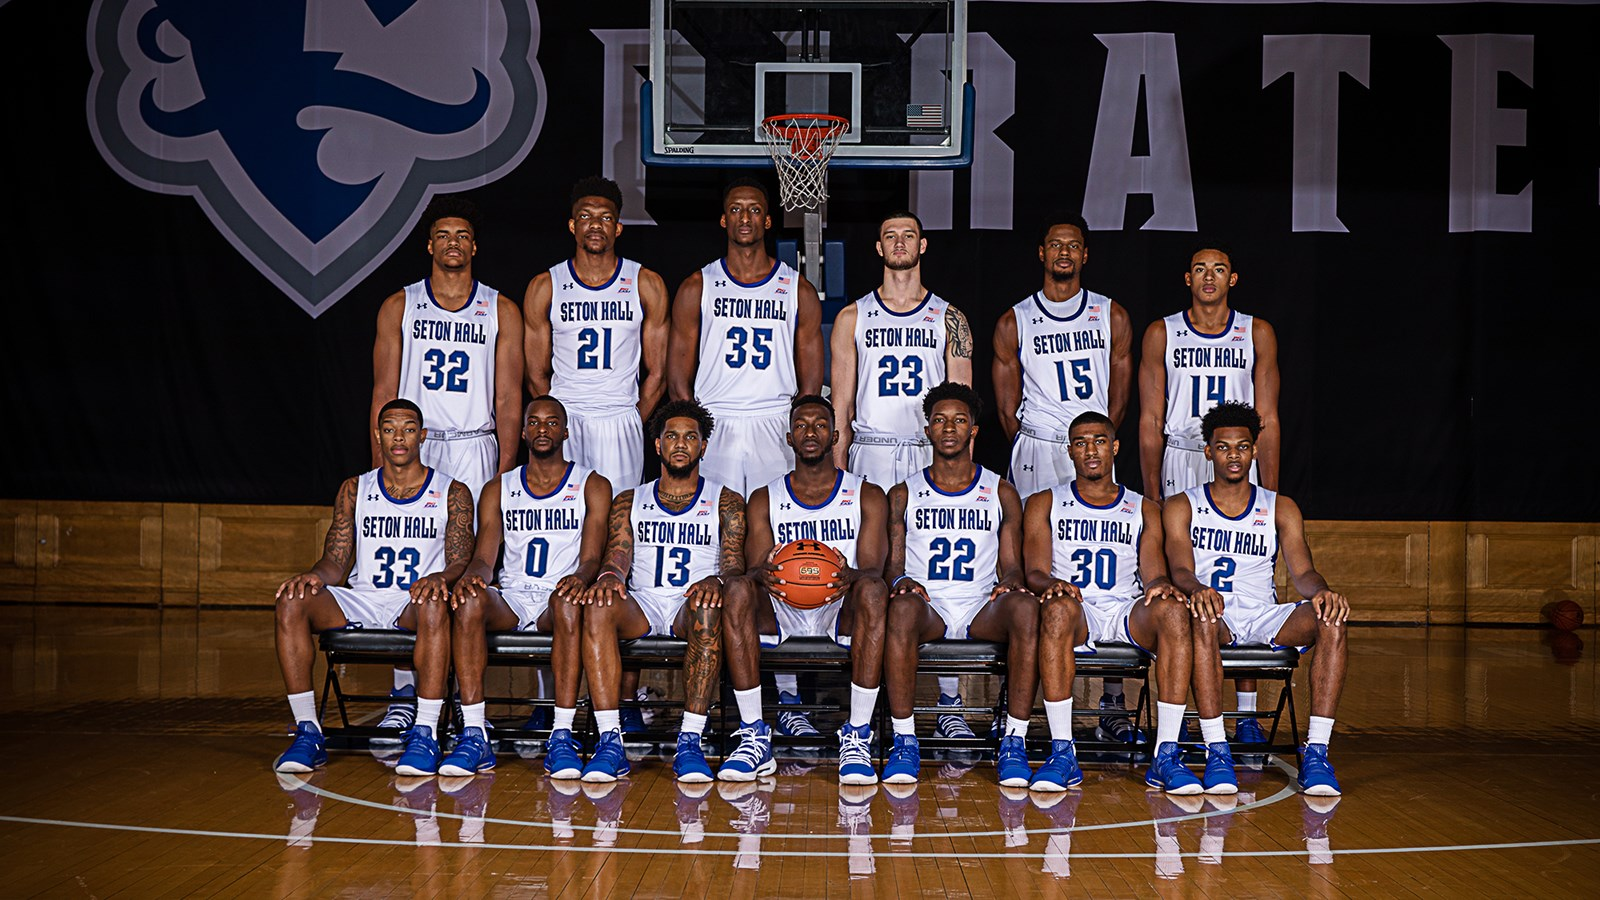 2018-19 men's basketball roster - seton hall university athletics